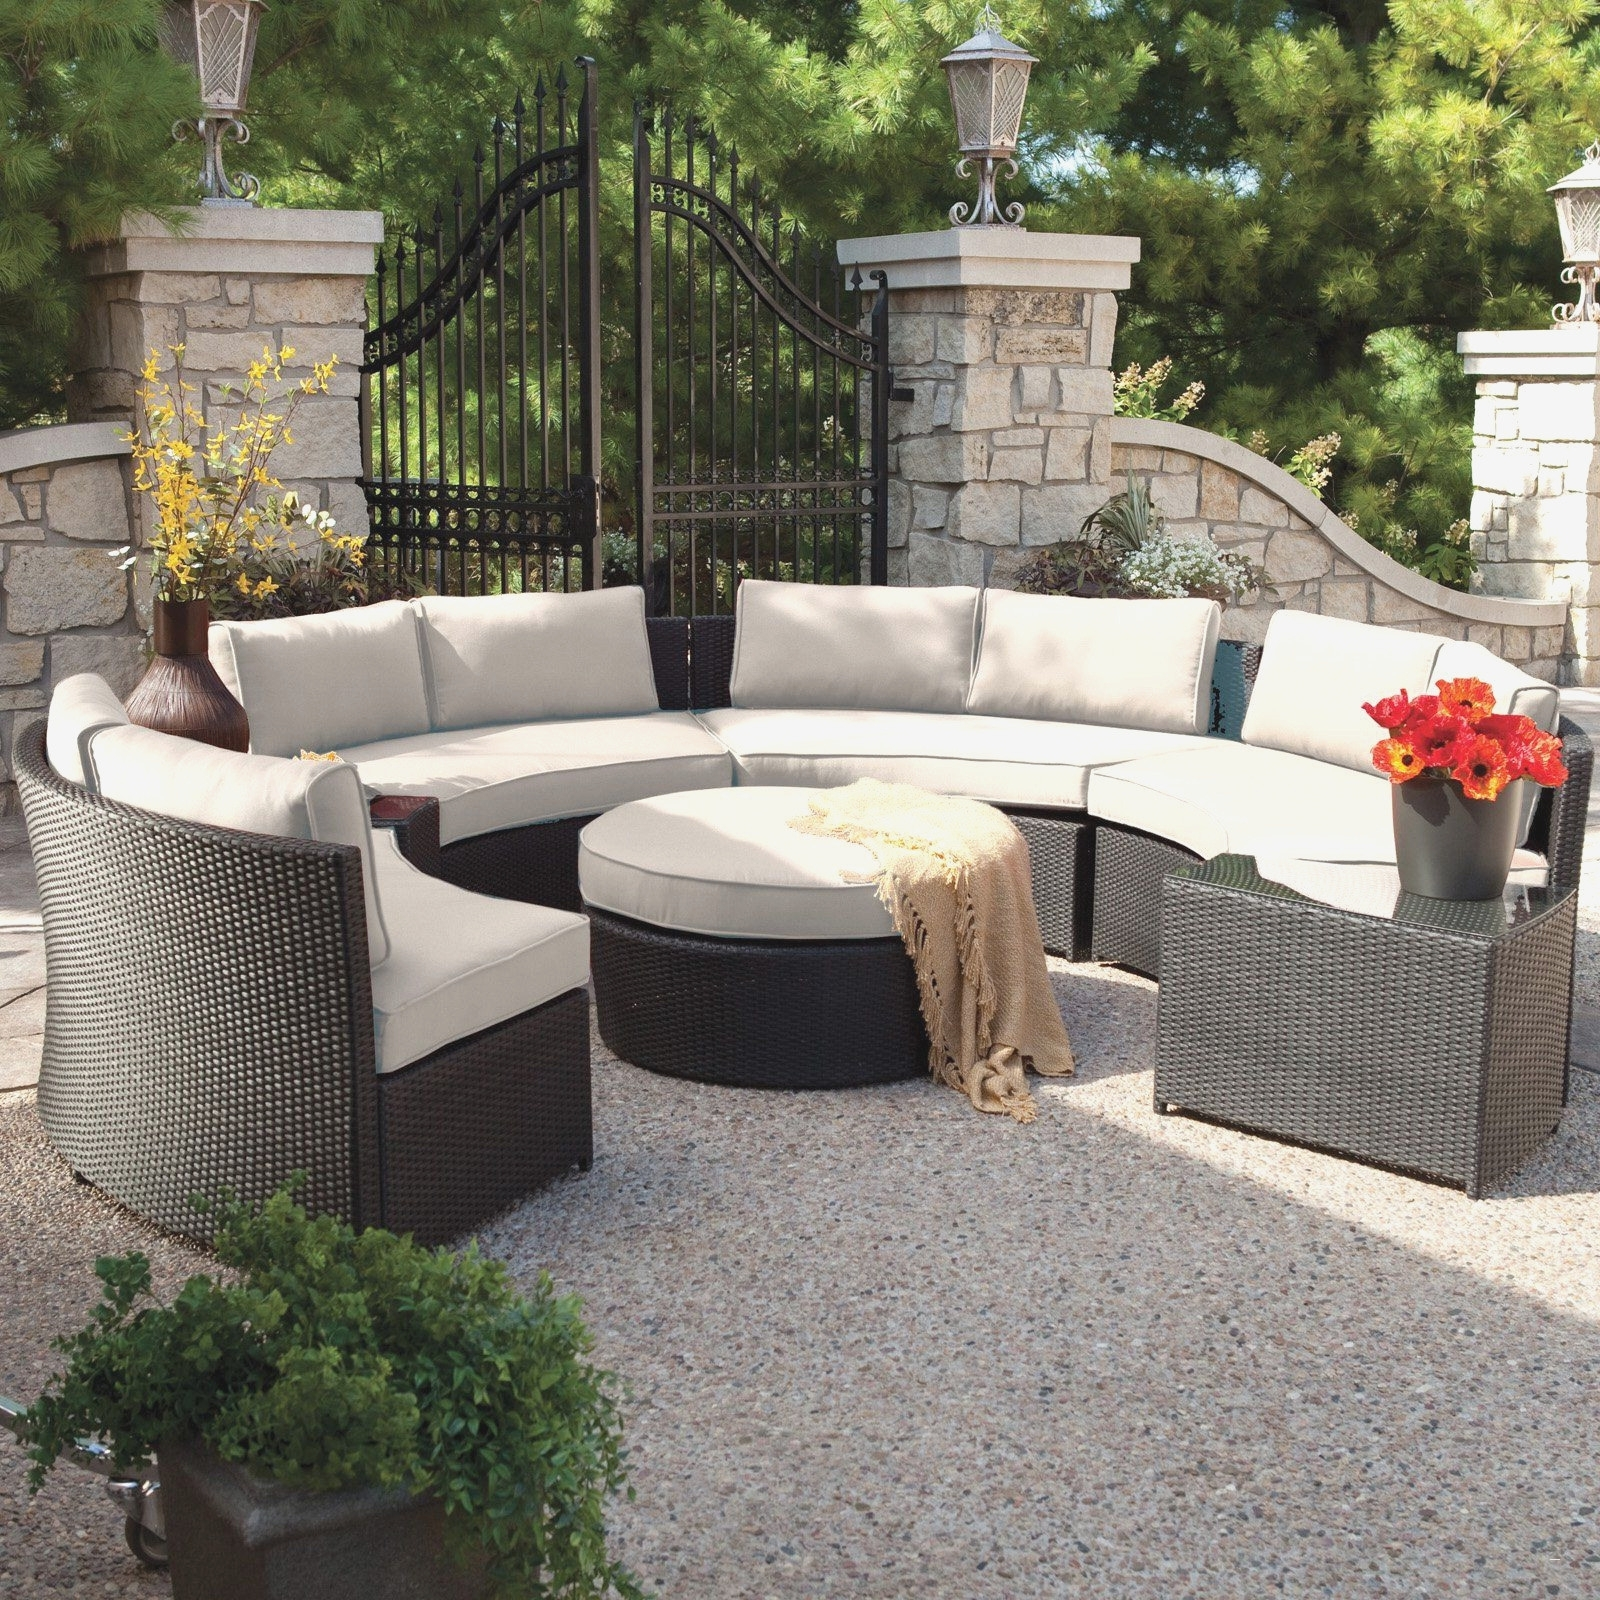 Outdoor Patio Couch Best Of Outdoor Patio Furniture Conversation In Most Current Patio Sectional Conversation Sets (View 5 of 20)